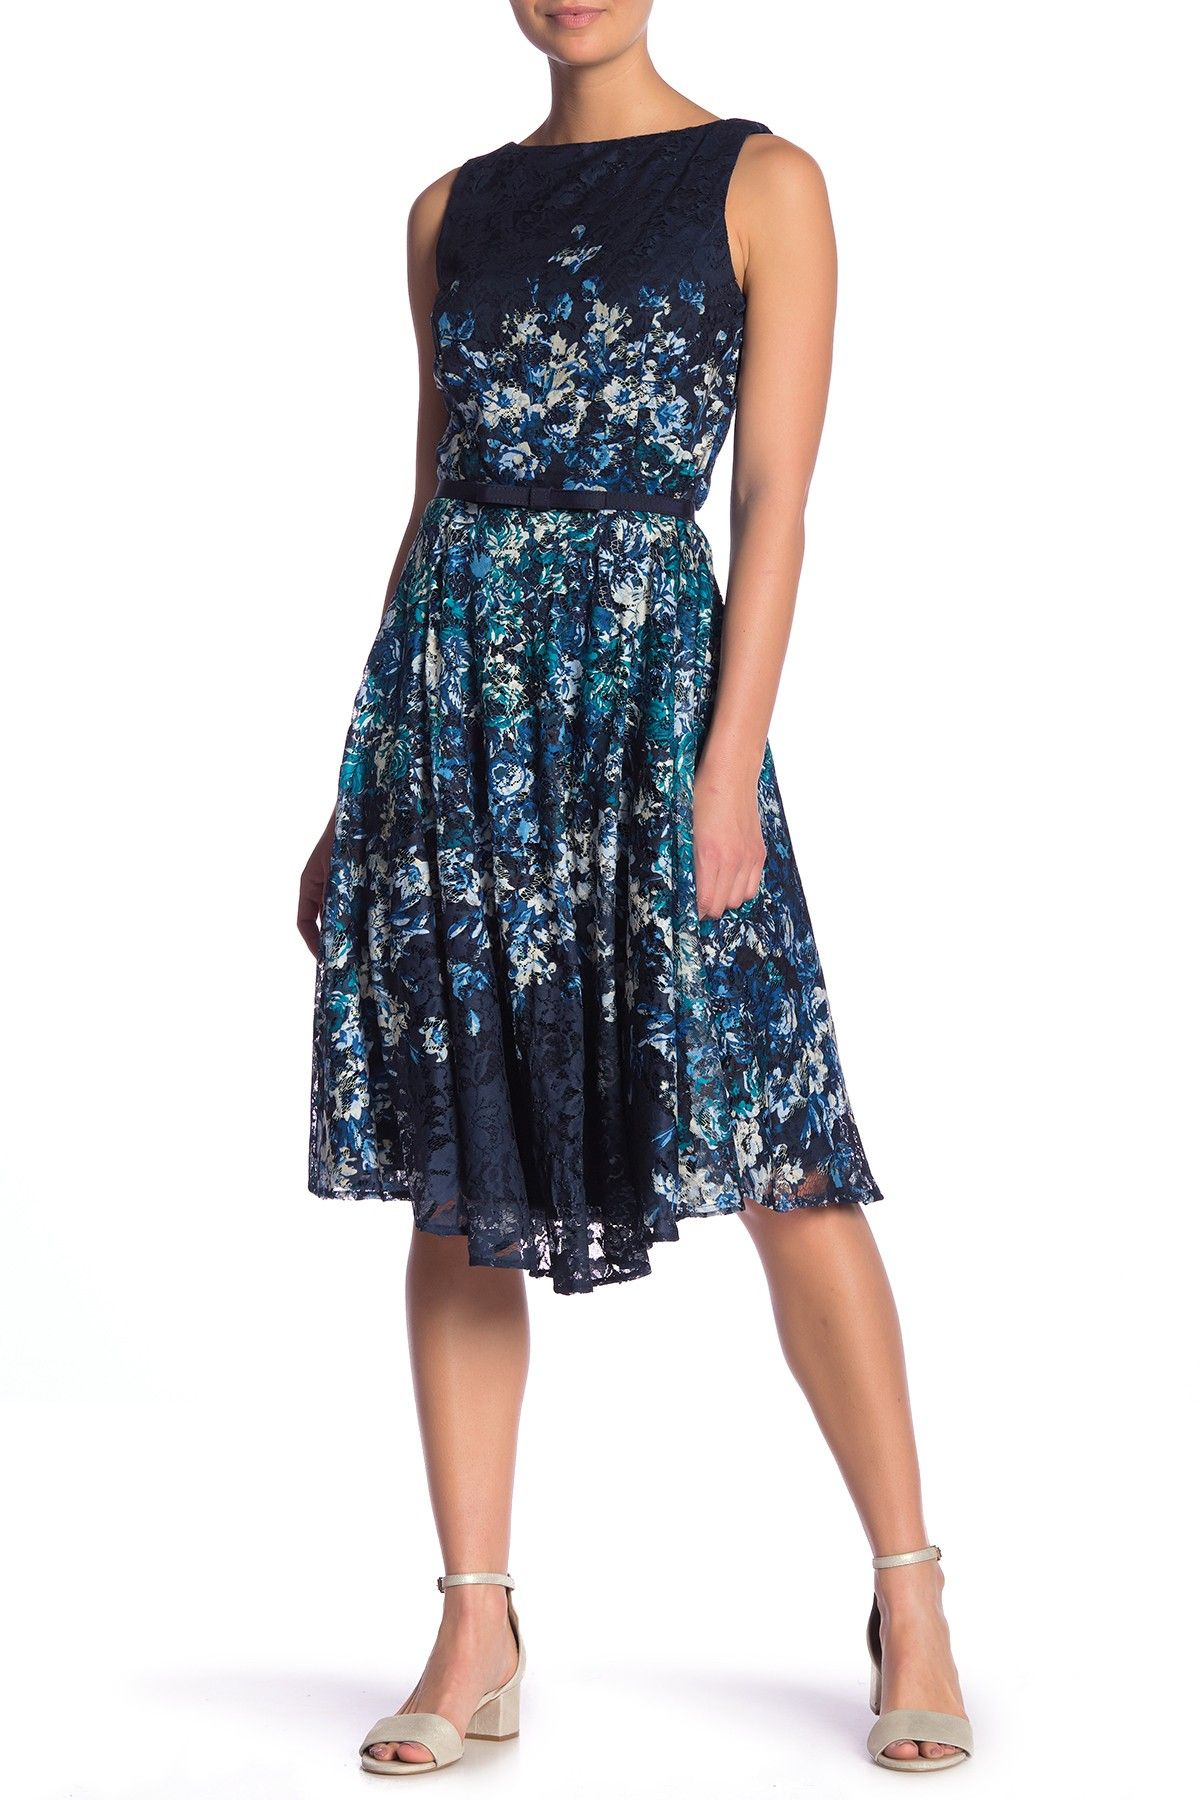 Gabby Skye Floral Print Lace Dress Fashion In 2019